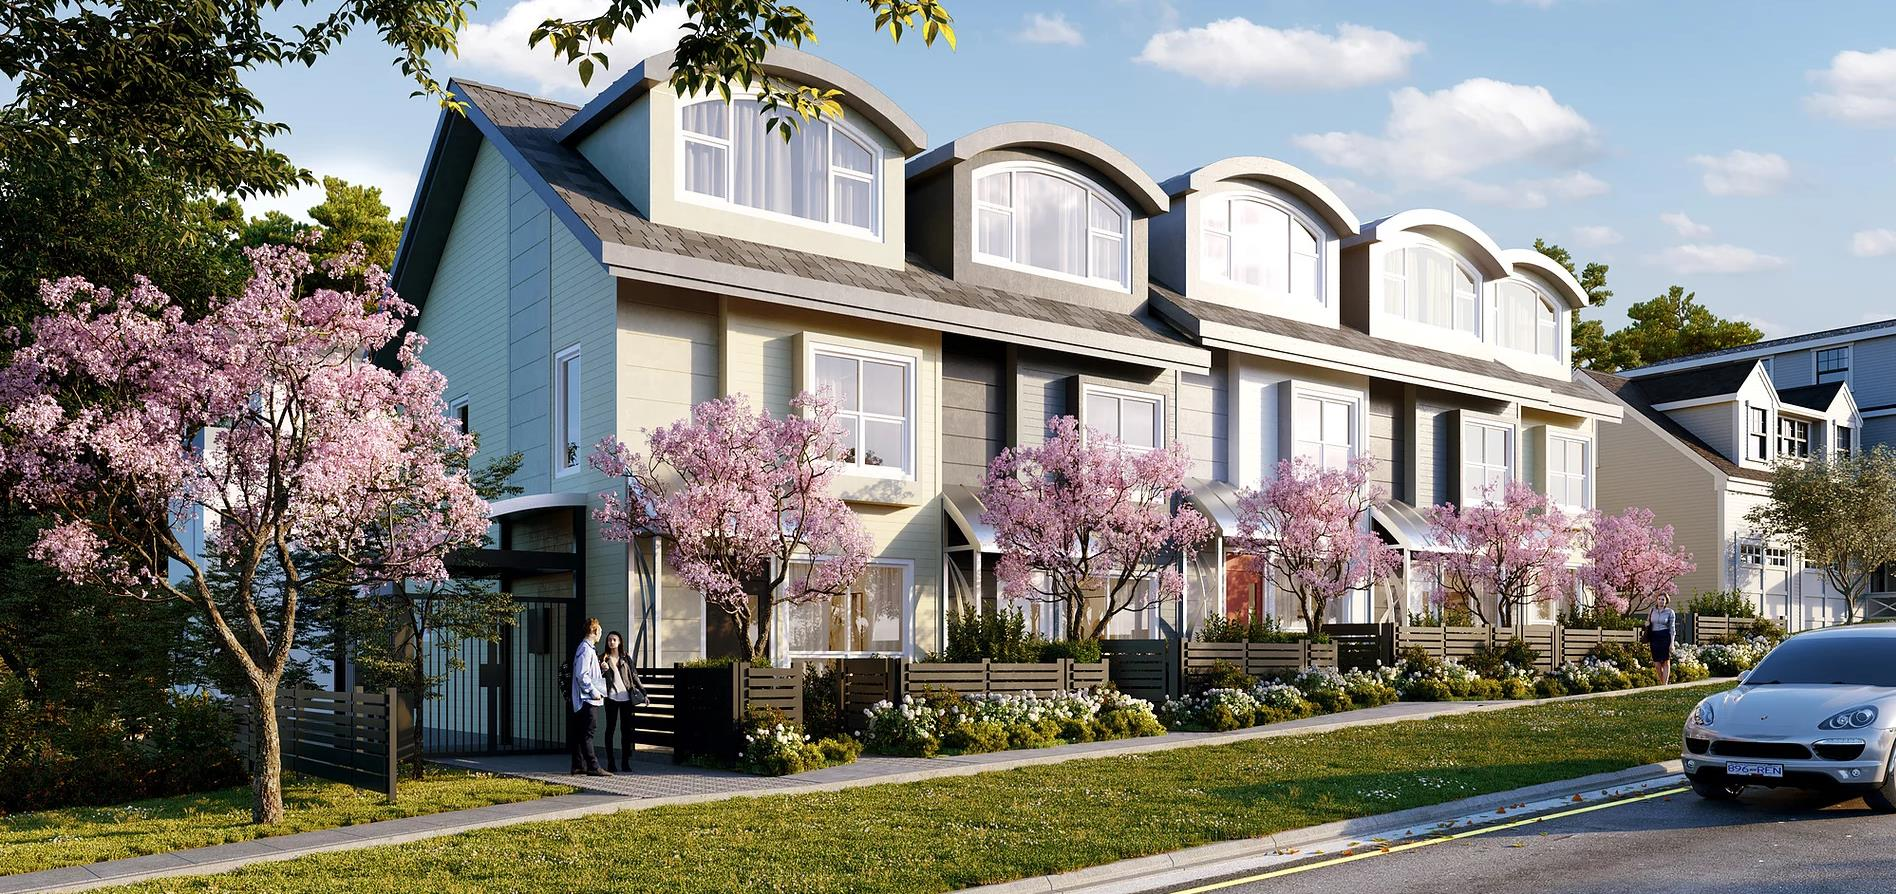 Aero Place On Vancouver Westside Townhouse Render